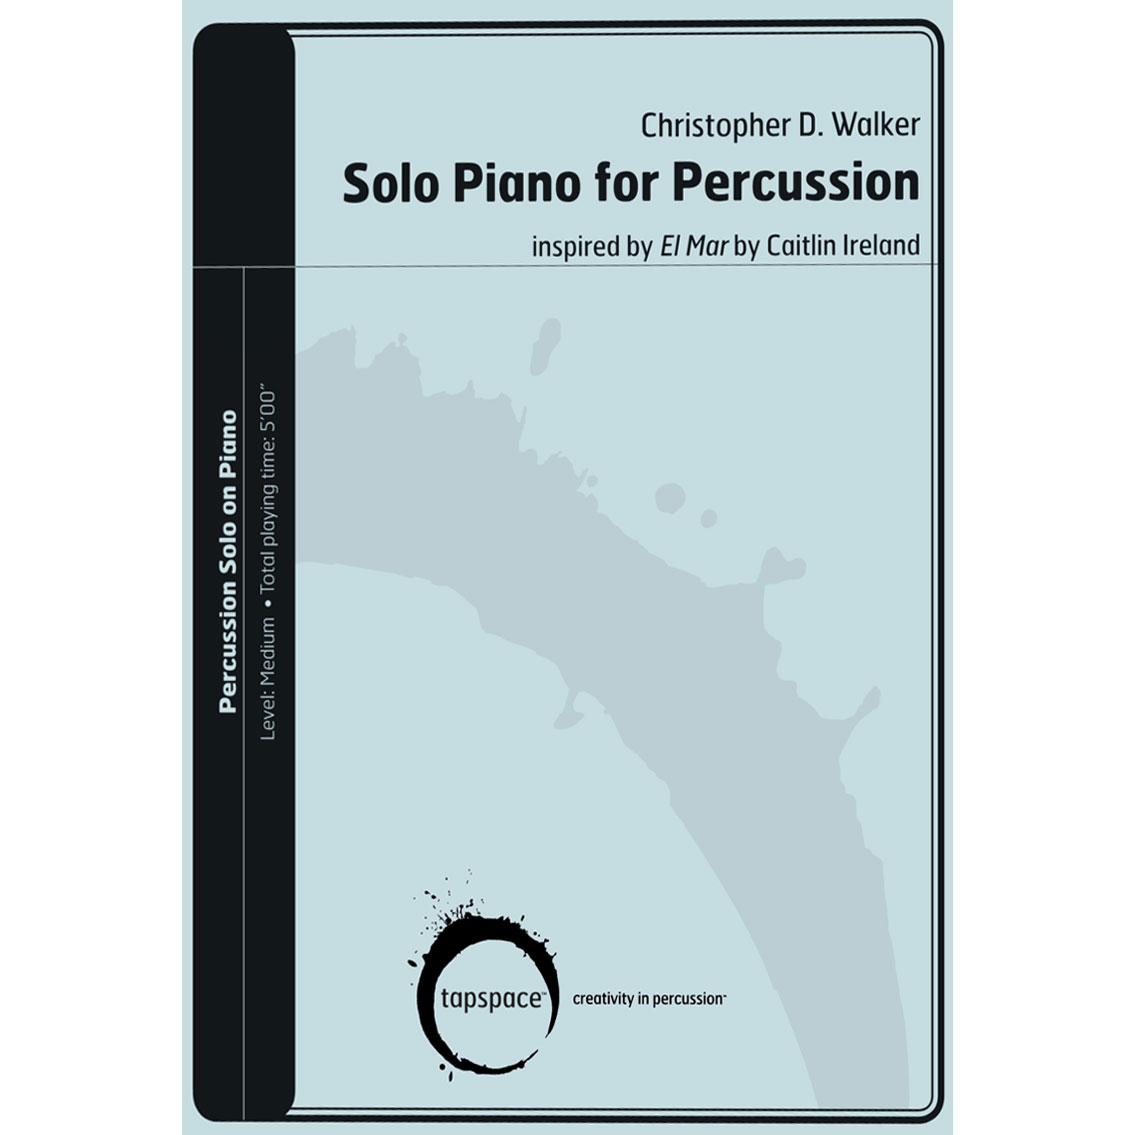 Solo Piano for Percussion by Christopher D. Walker